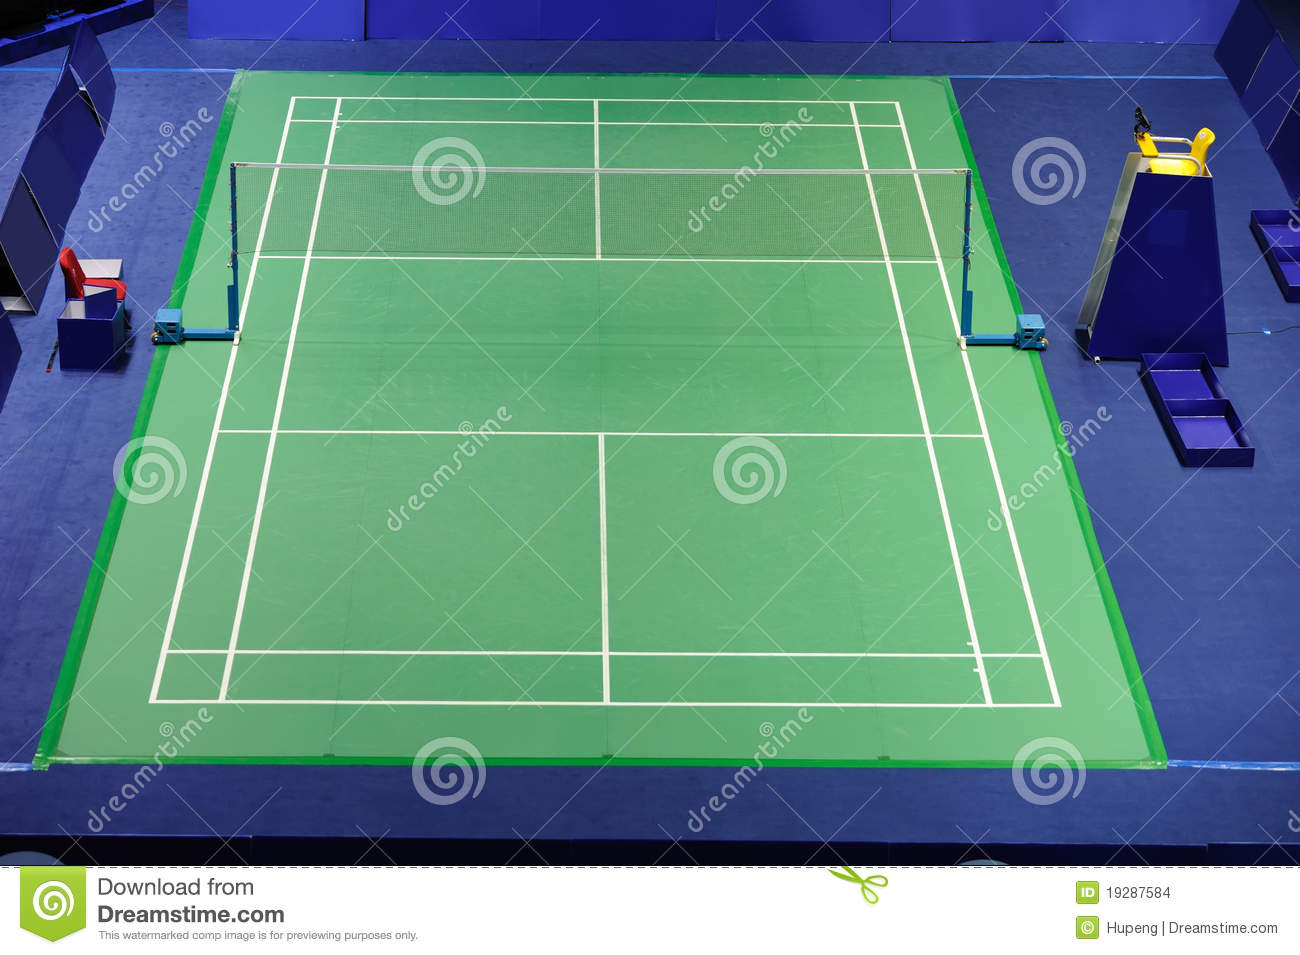 International Standard Badminton Court Stock Images